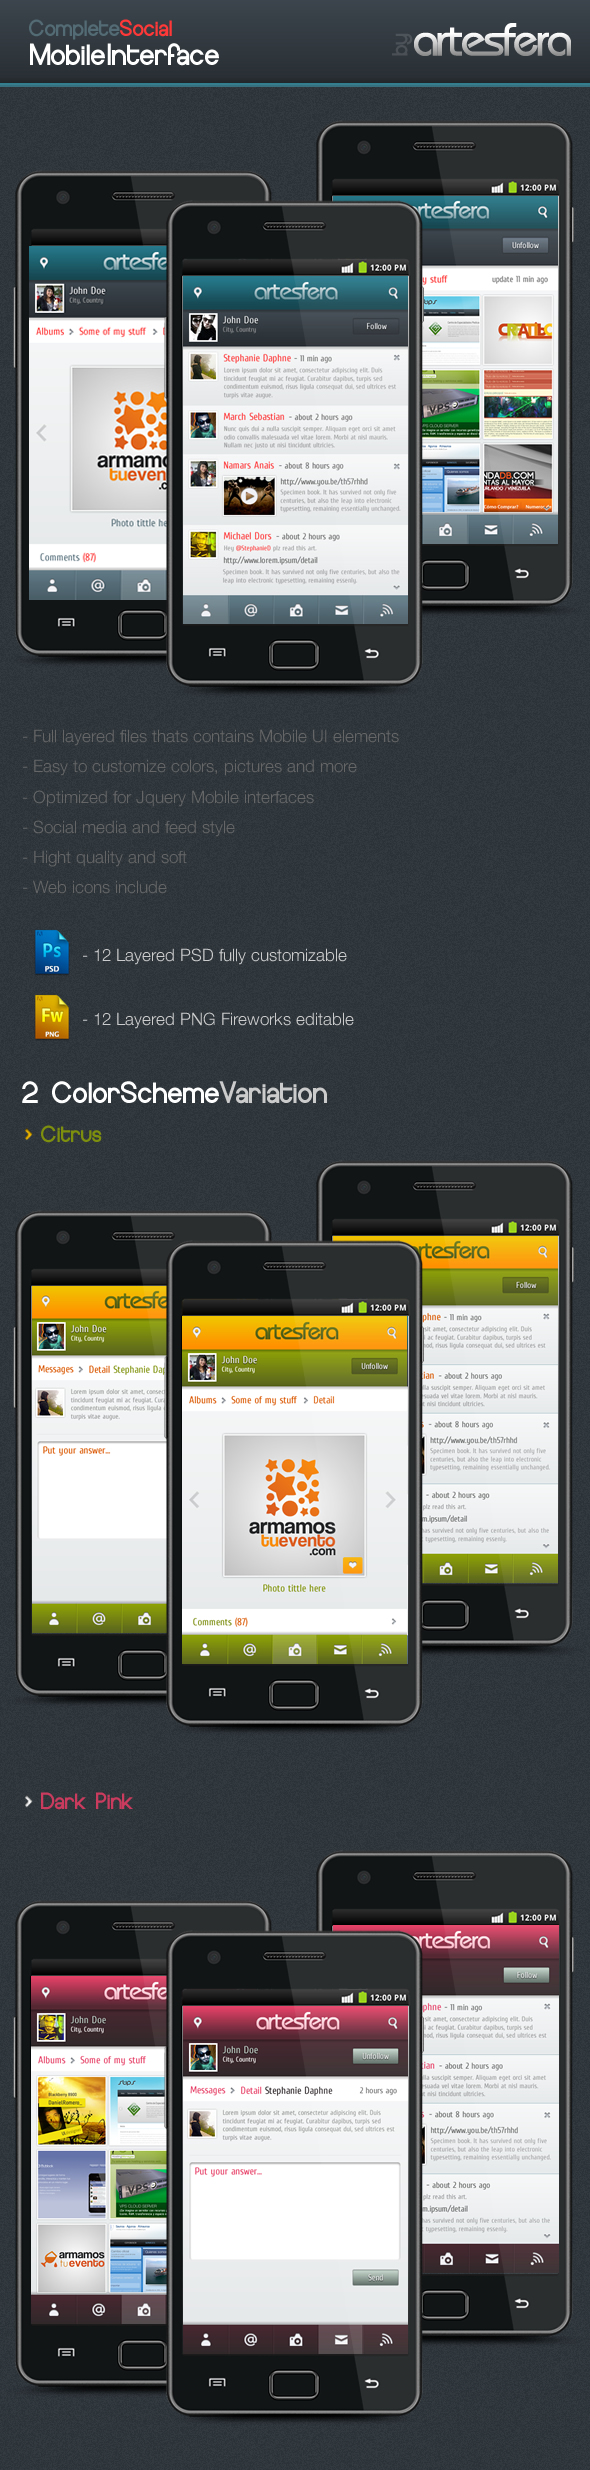 Complete_mobile_interface_by_artesfera-d4uh9c1